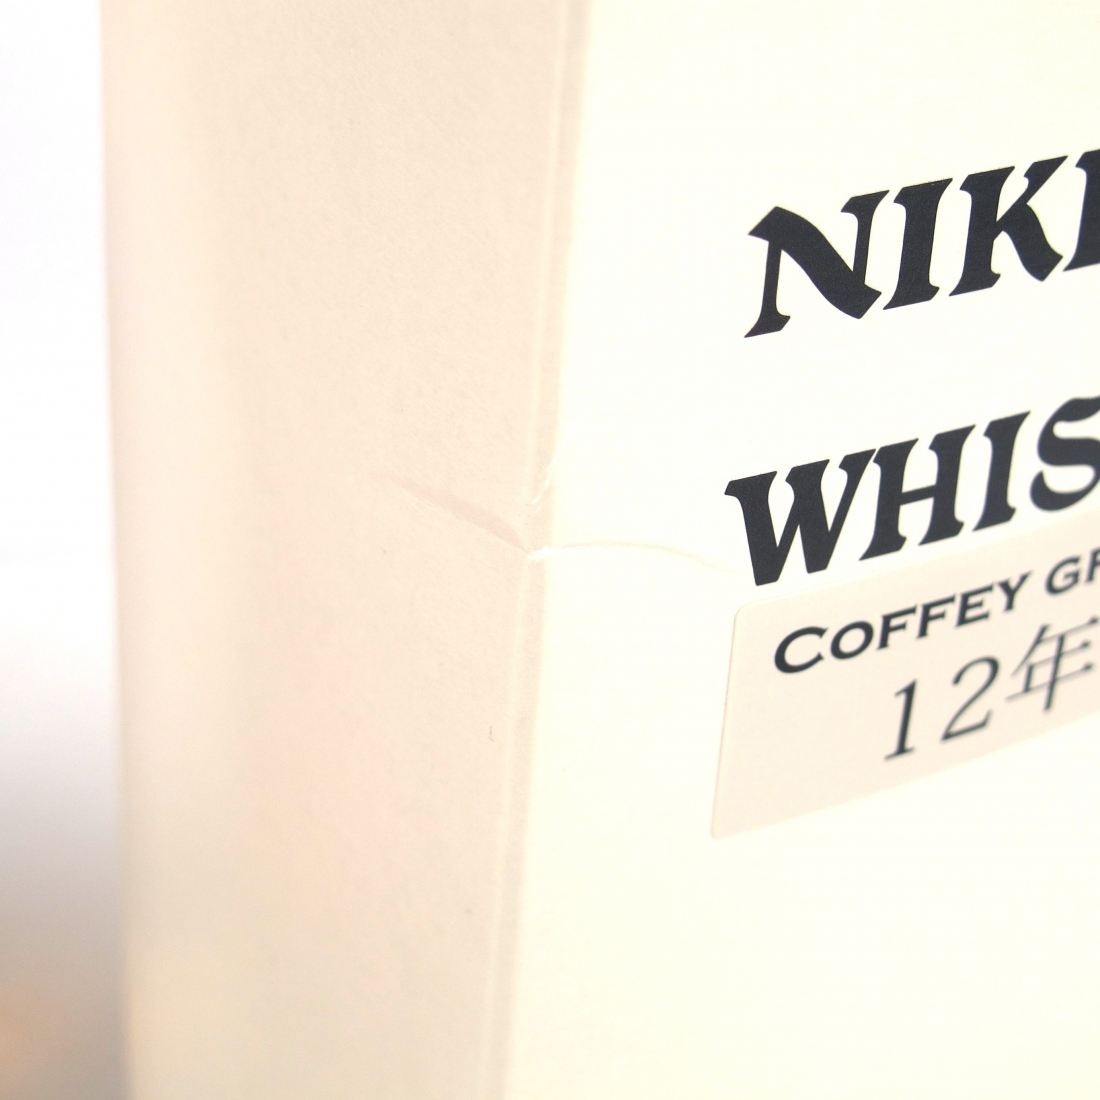 Nikka Coffey Grain 12 Year Old Woody and Mellow 50cl